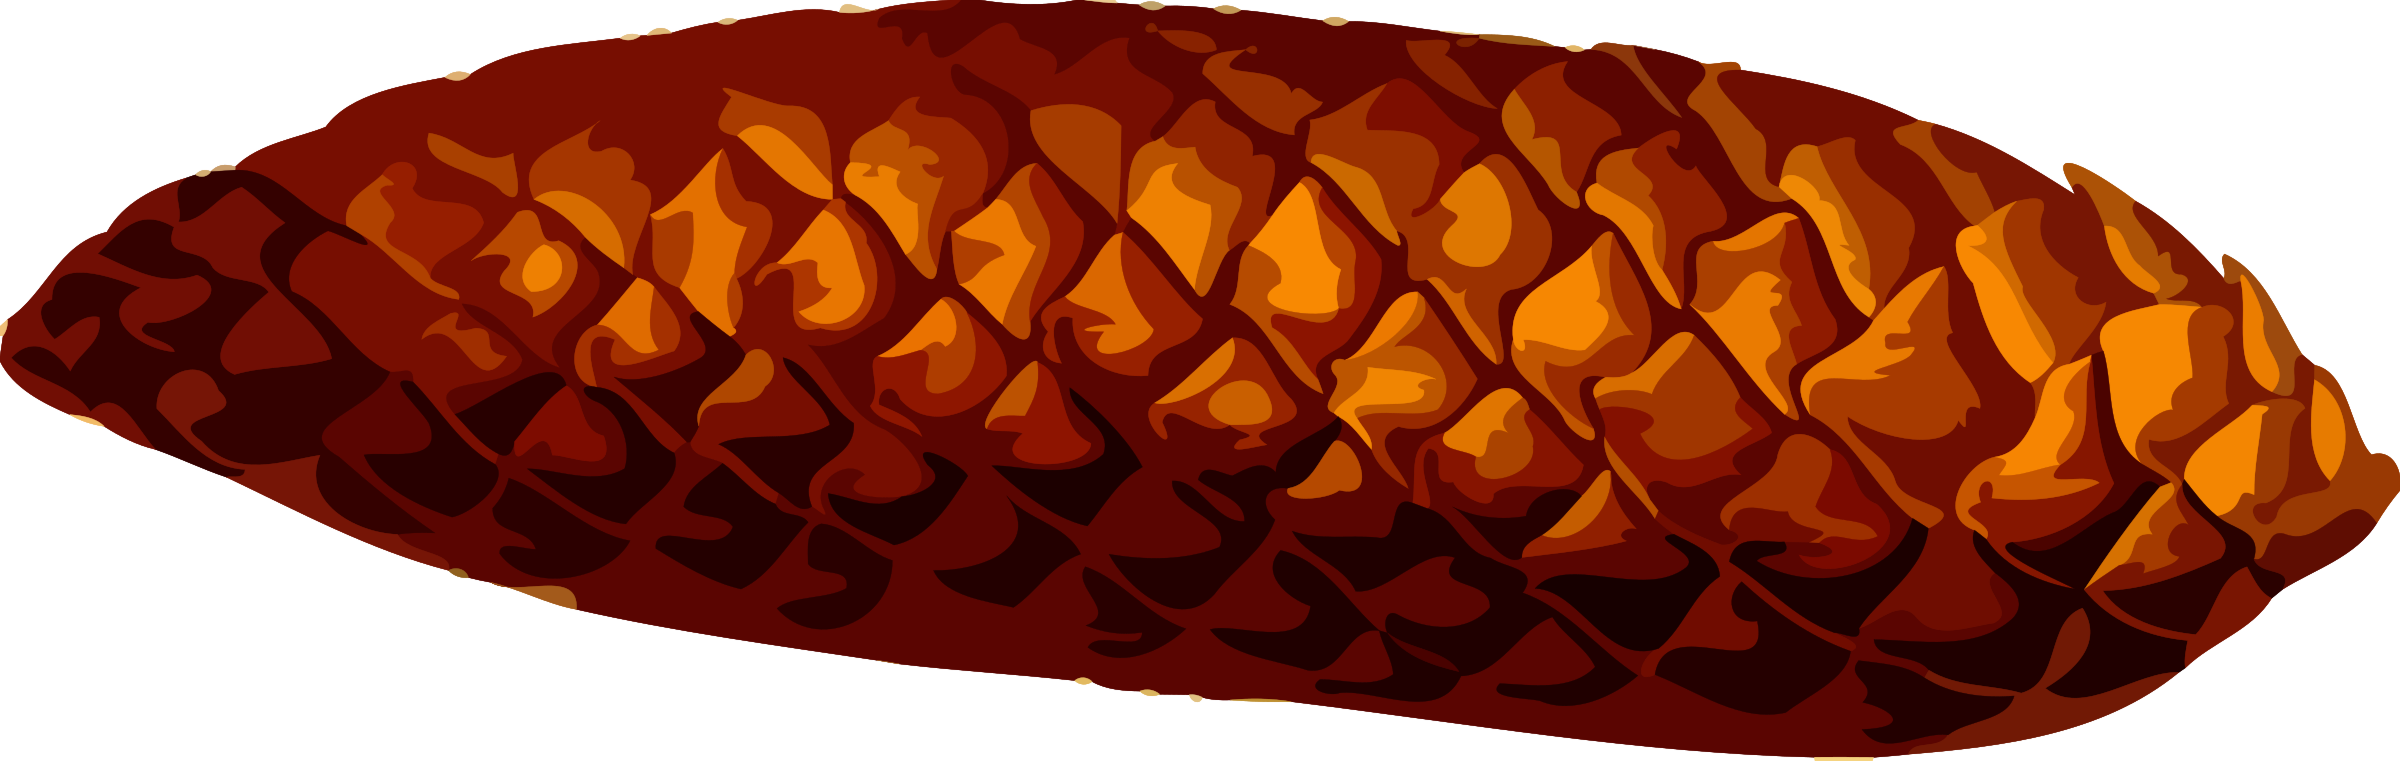 Pinecone clipart svg. Pine cone low resolution